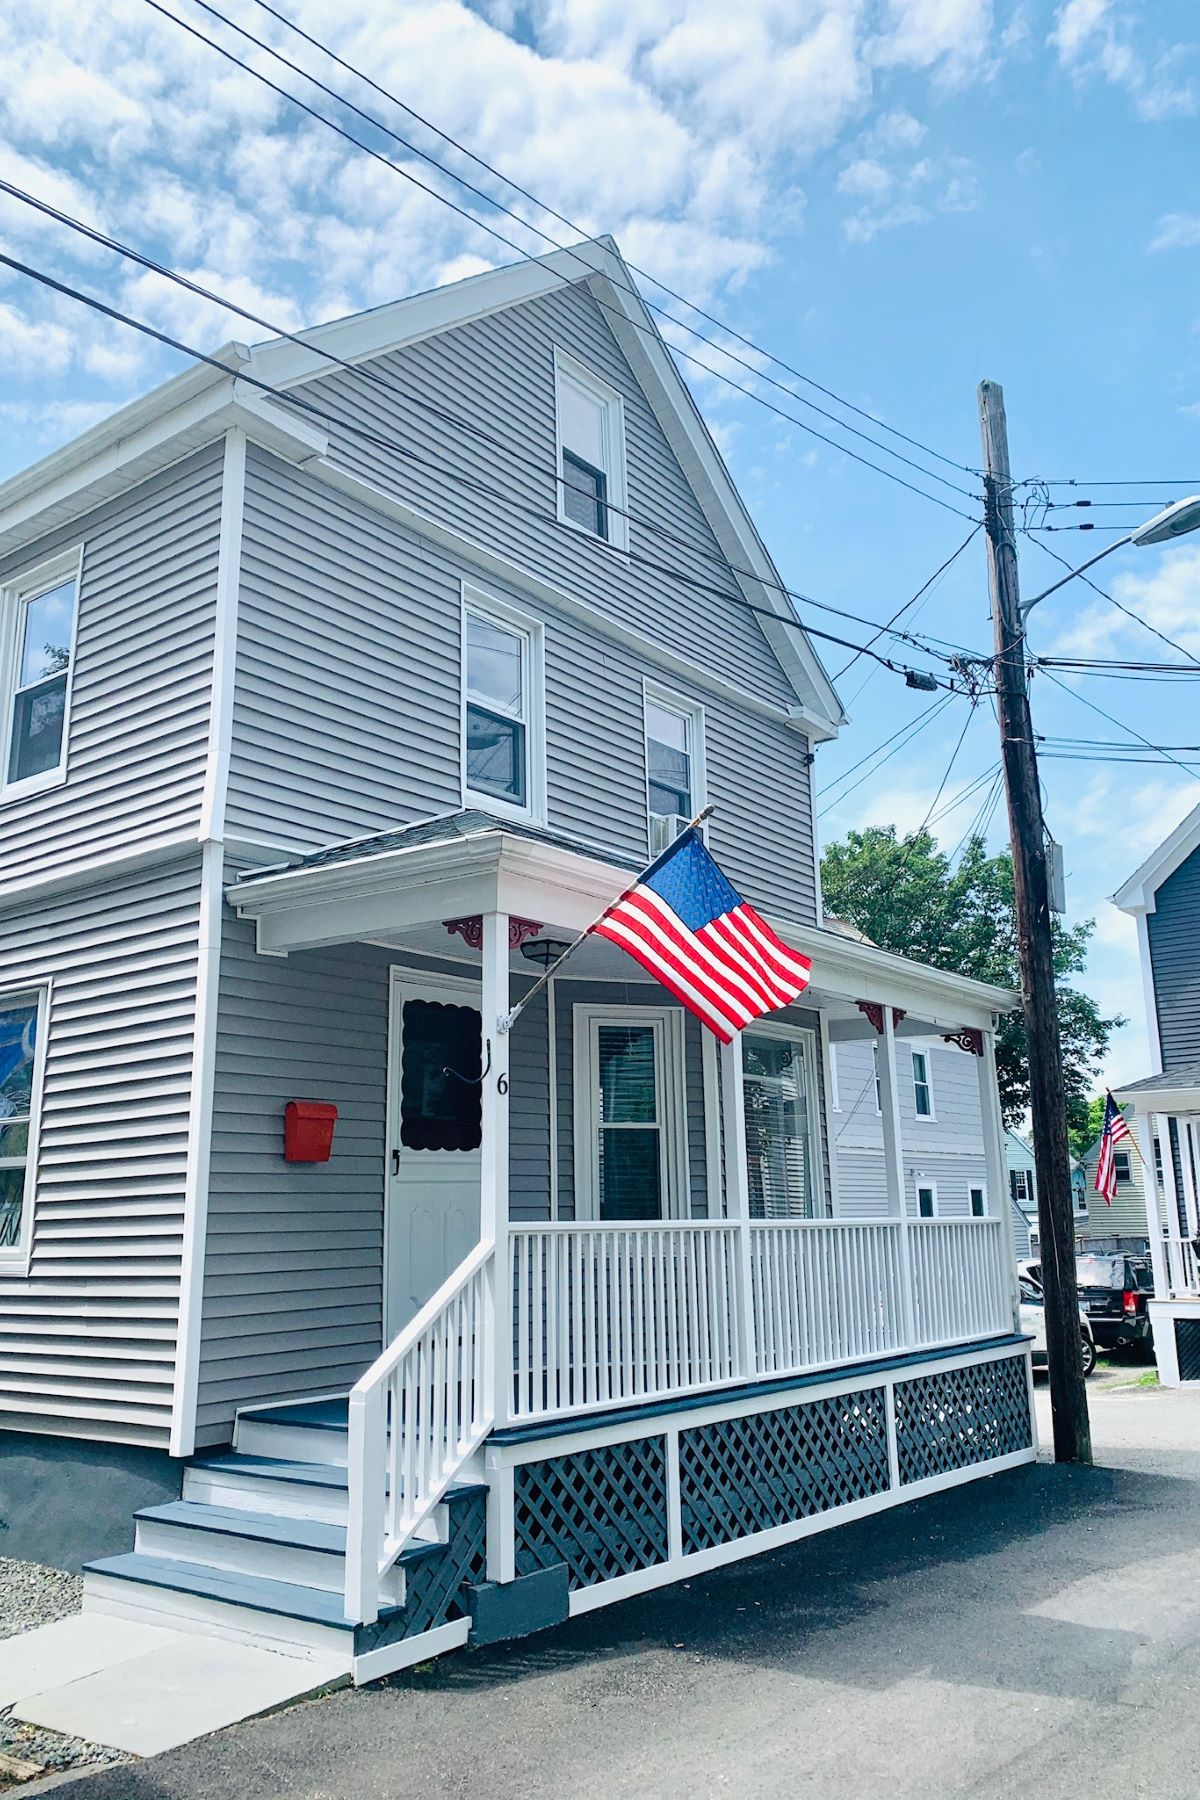 Single Family Homes for Sale at Adorable Updated Newport Cottage 6 Nicol Terrace Newport, Rhode Island 02840 United States